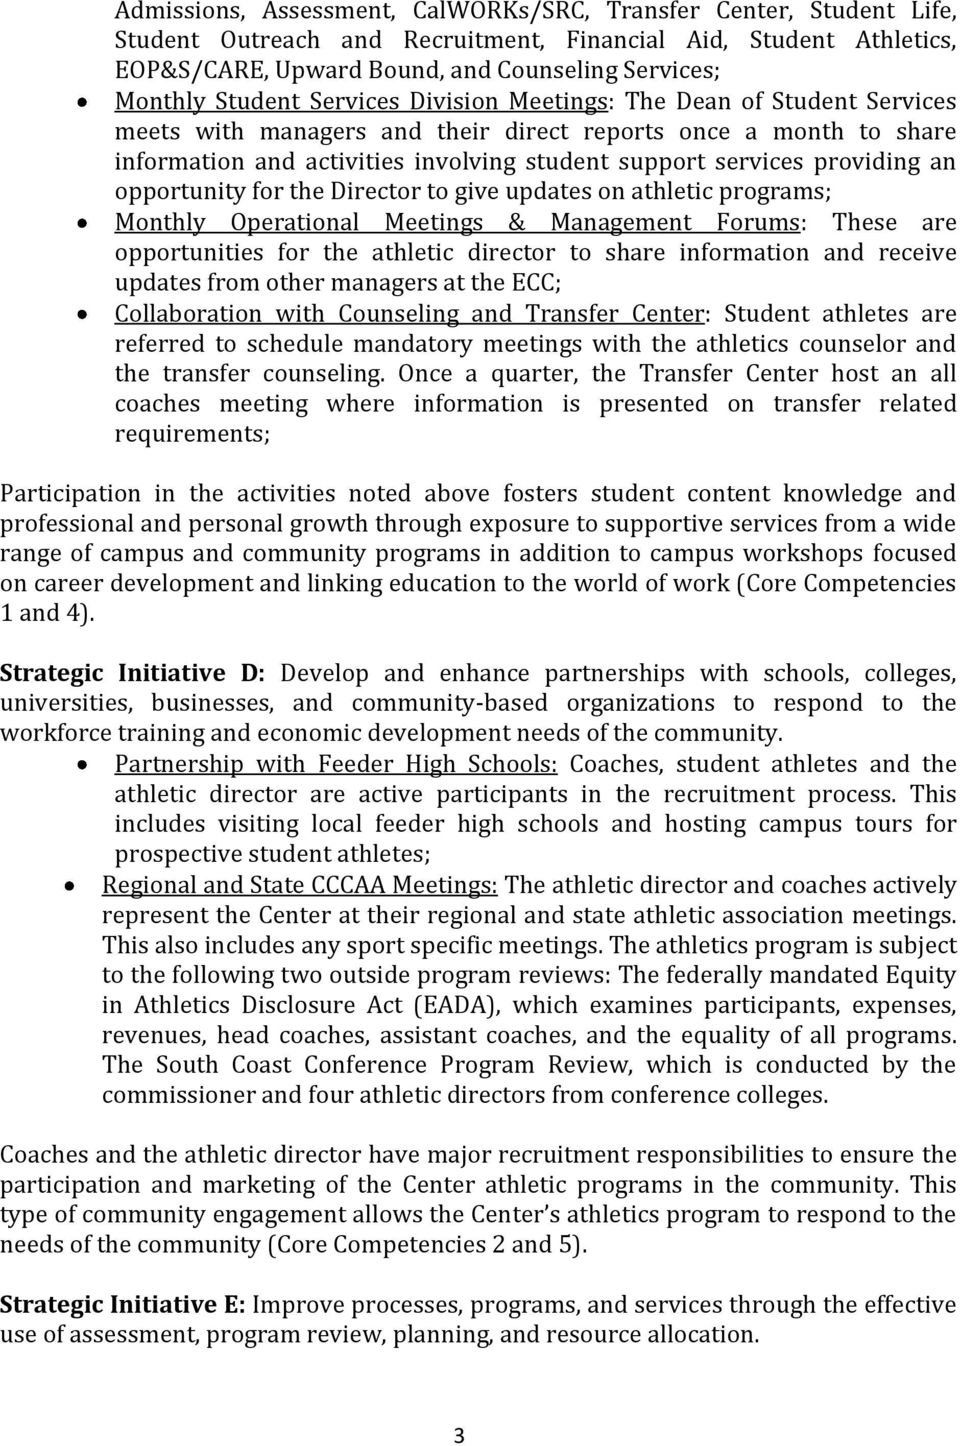 providing an opportunity for the Director to give updates on athletic programs; Monthly Operational Meetings & Management Forums: These are opportunities for the athletic director to share